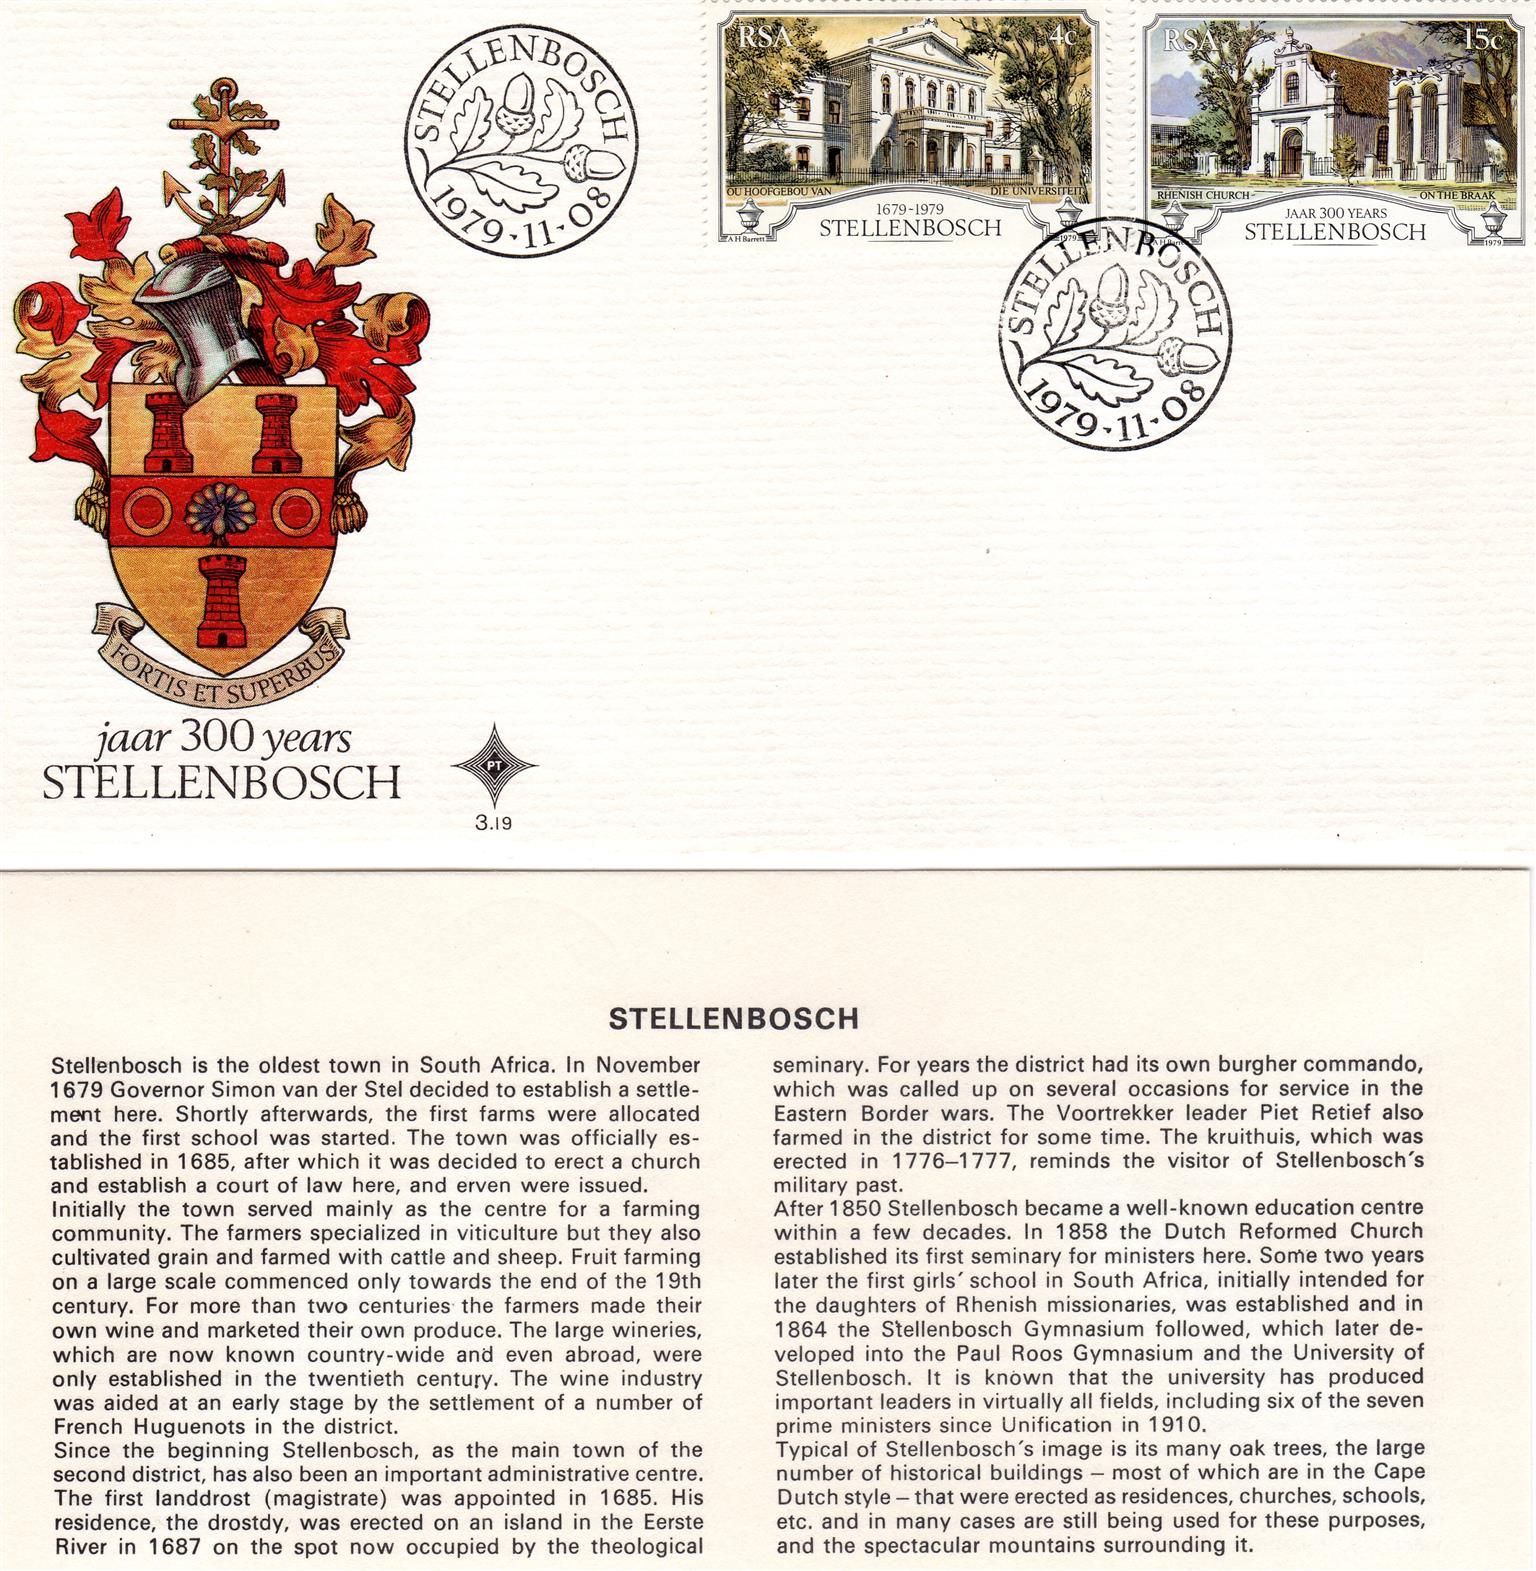 Commemorative Stamp & Envelope Set - 300 Years Stellenbosch 1979